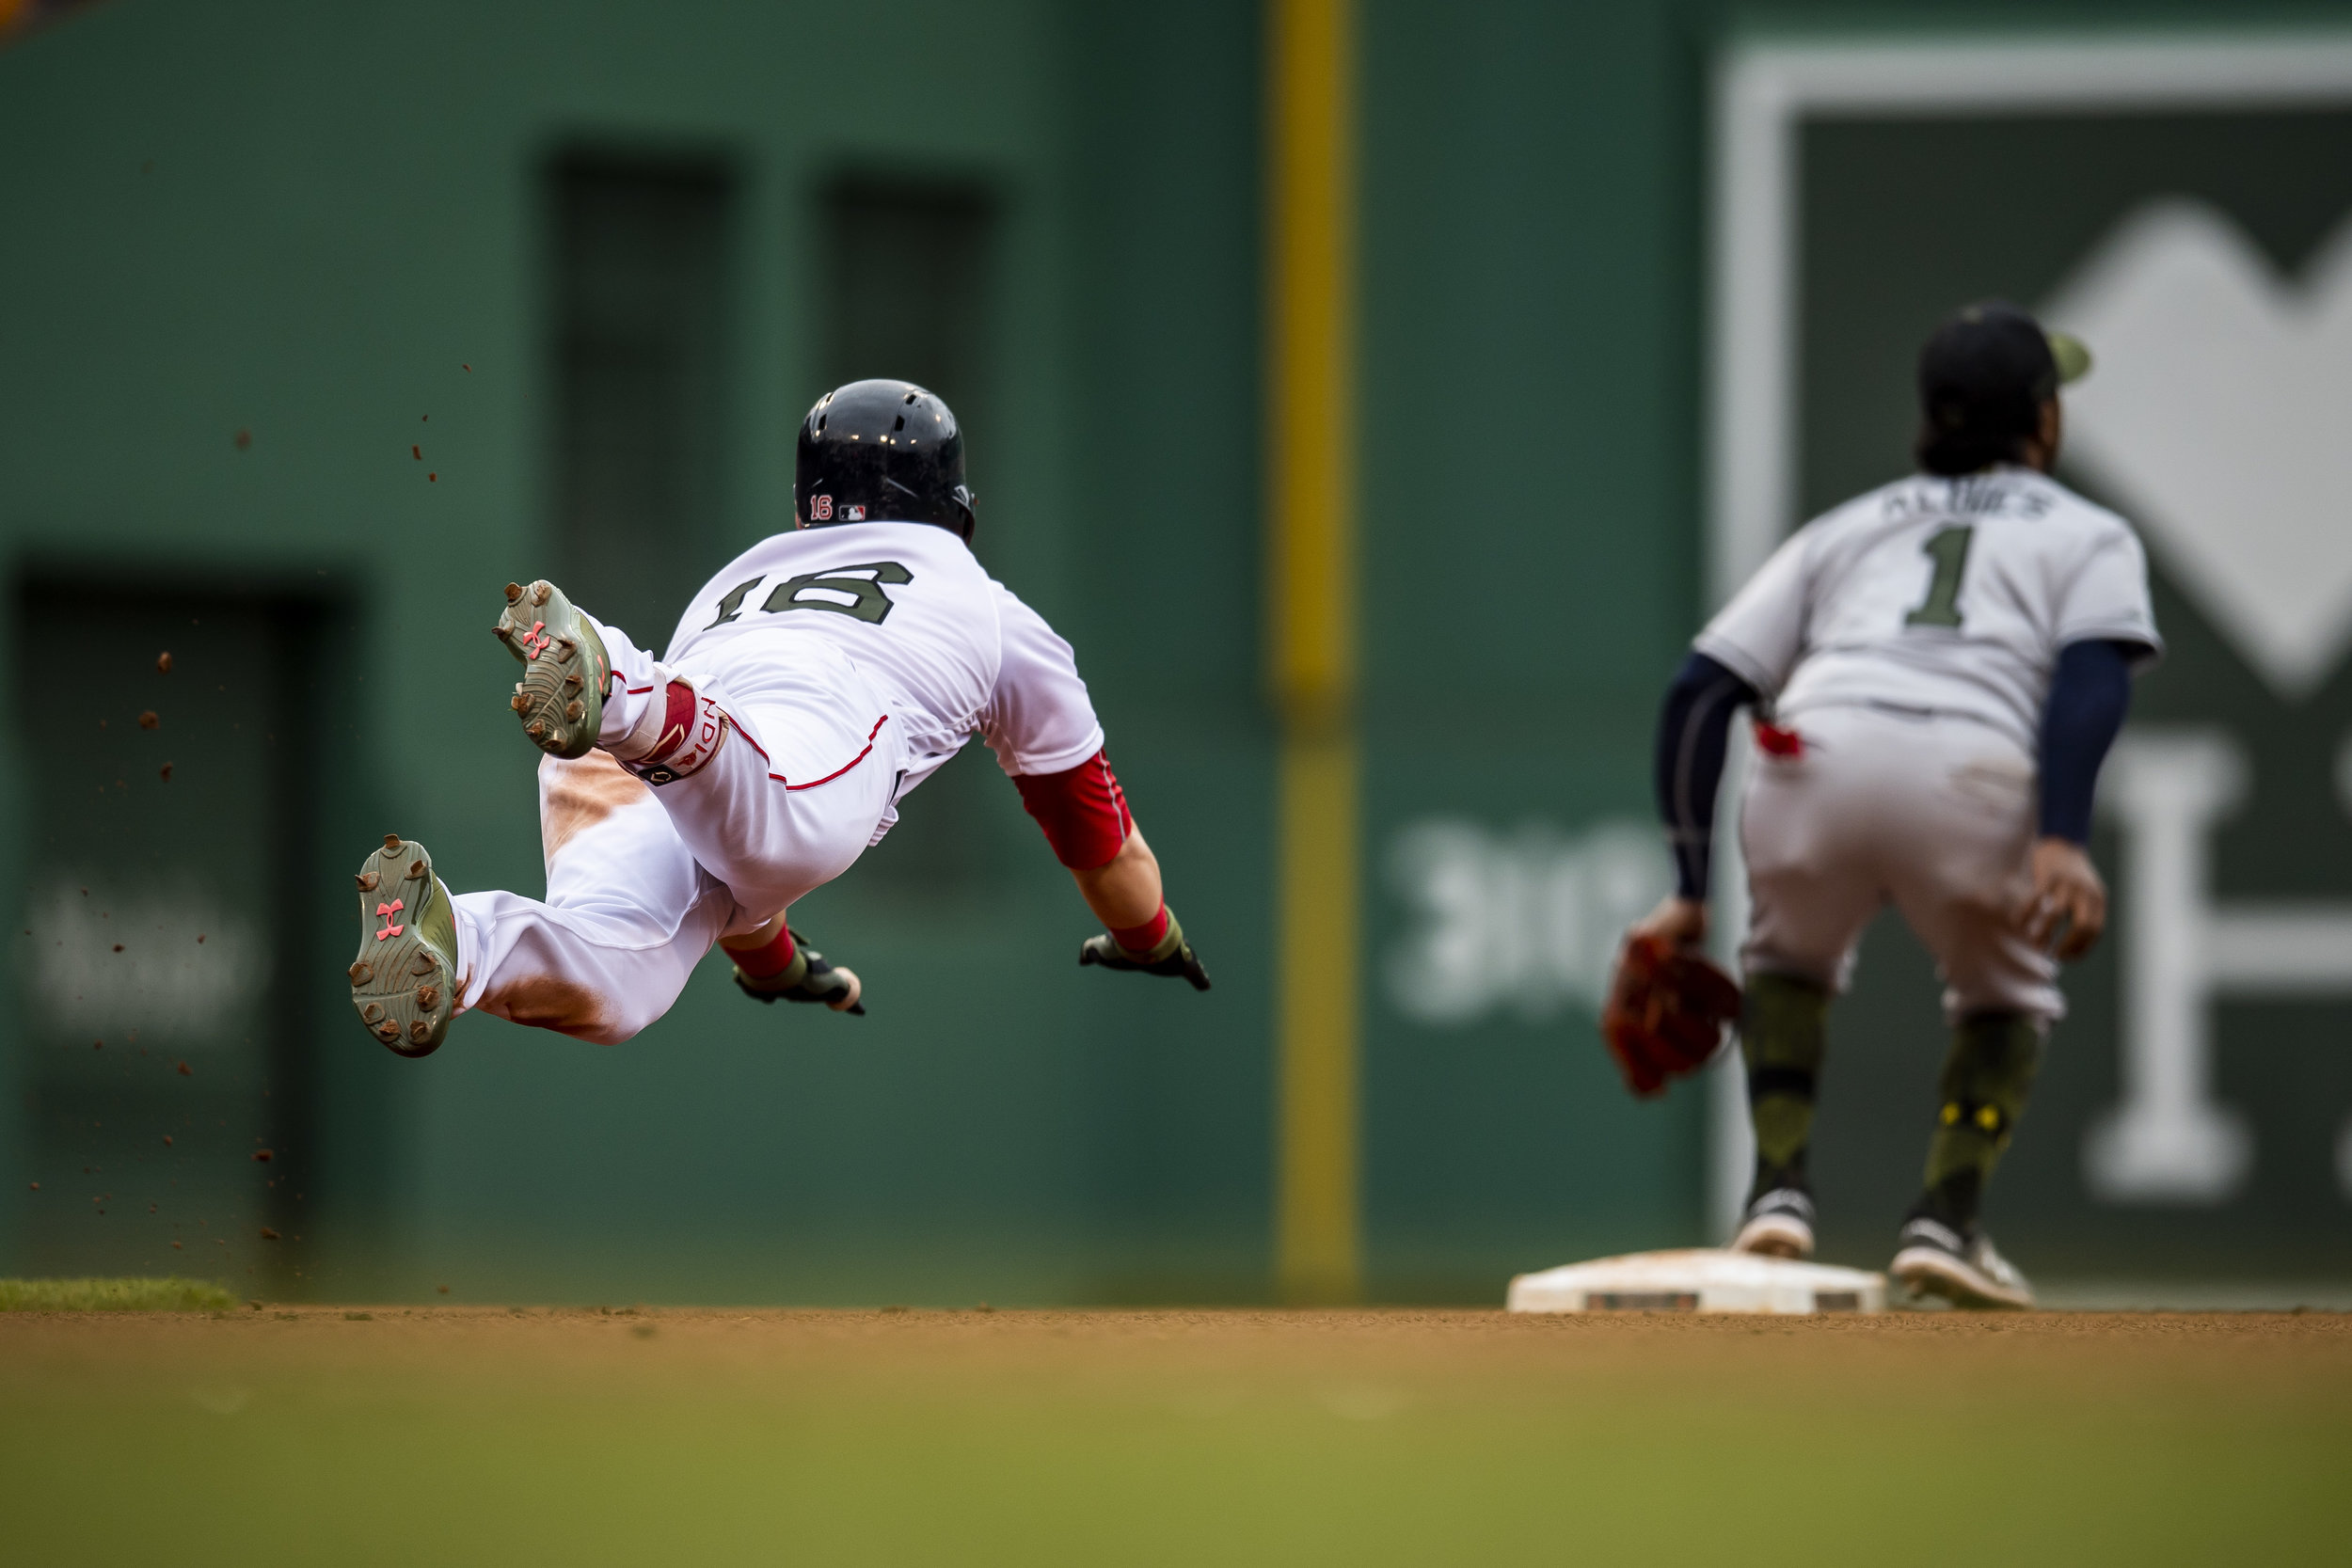 May 27, 2018, Boston, MA: Boston Red Sox outfielder Andrew Benintendi dives head first into second base for a double as the Boston Red Sox face the Atlanta Braves at Fenway Park in Boston, Massachusetts on Sunday, May 27, 2018. (Photo by Matthew Thomas/Boston Red Sox)